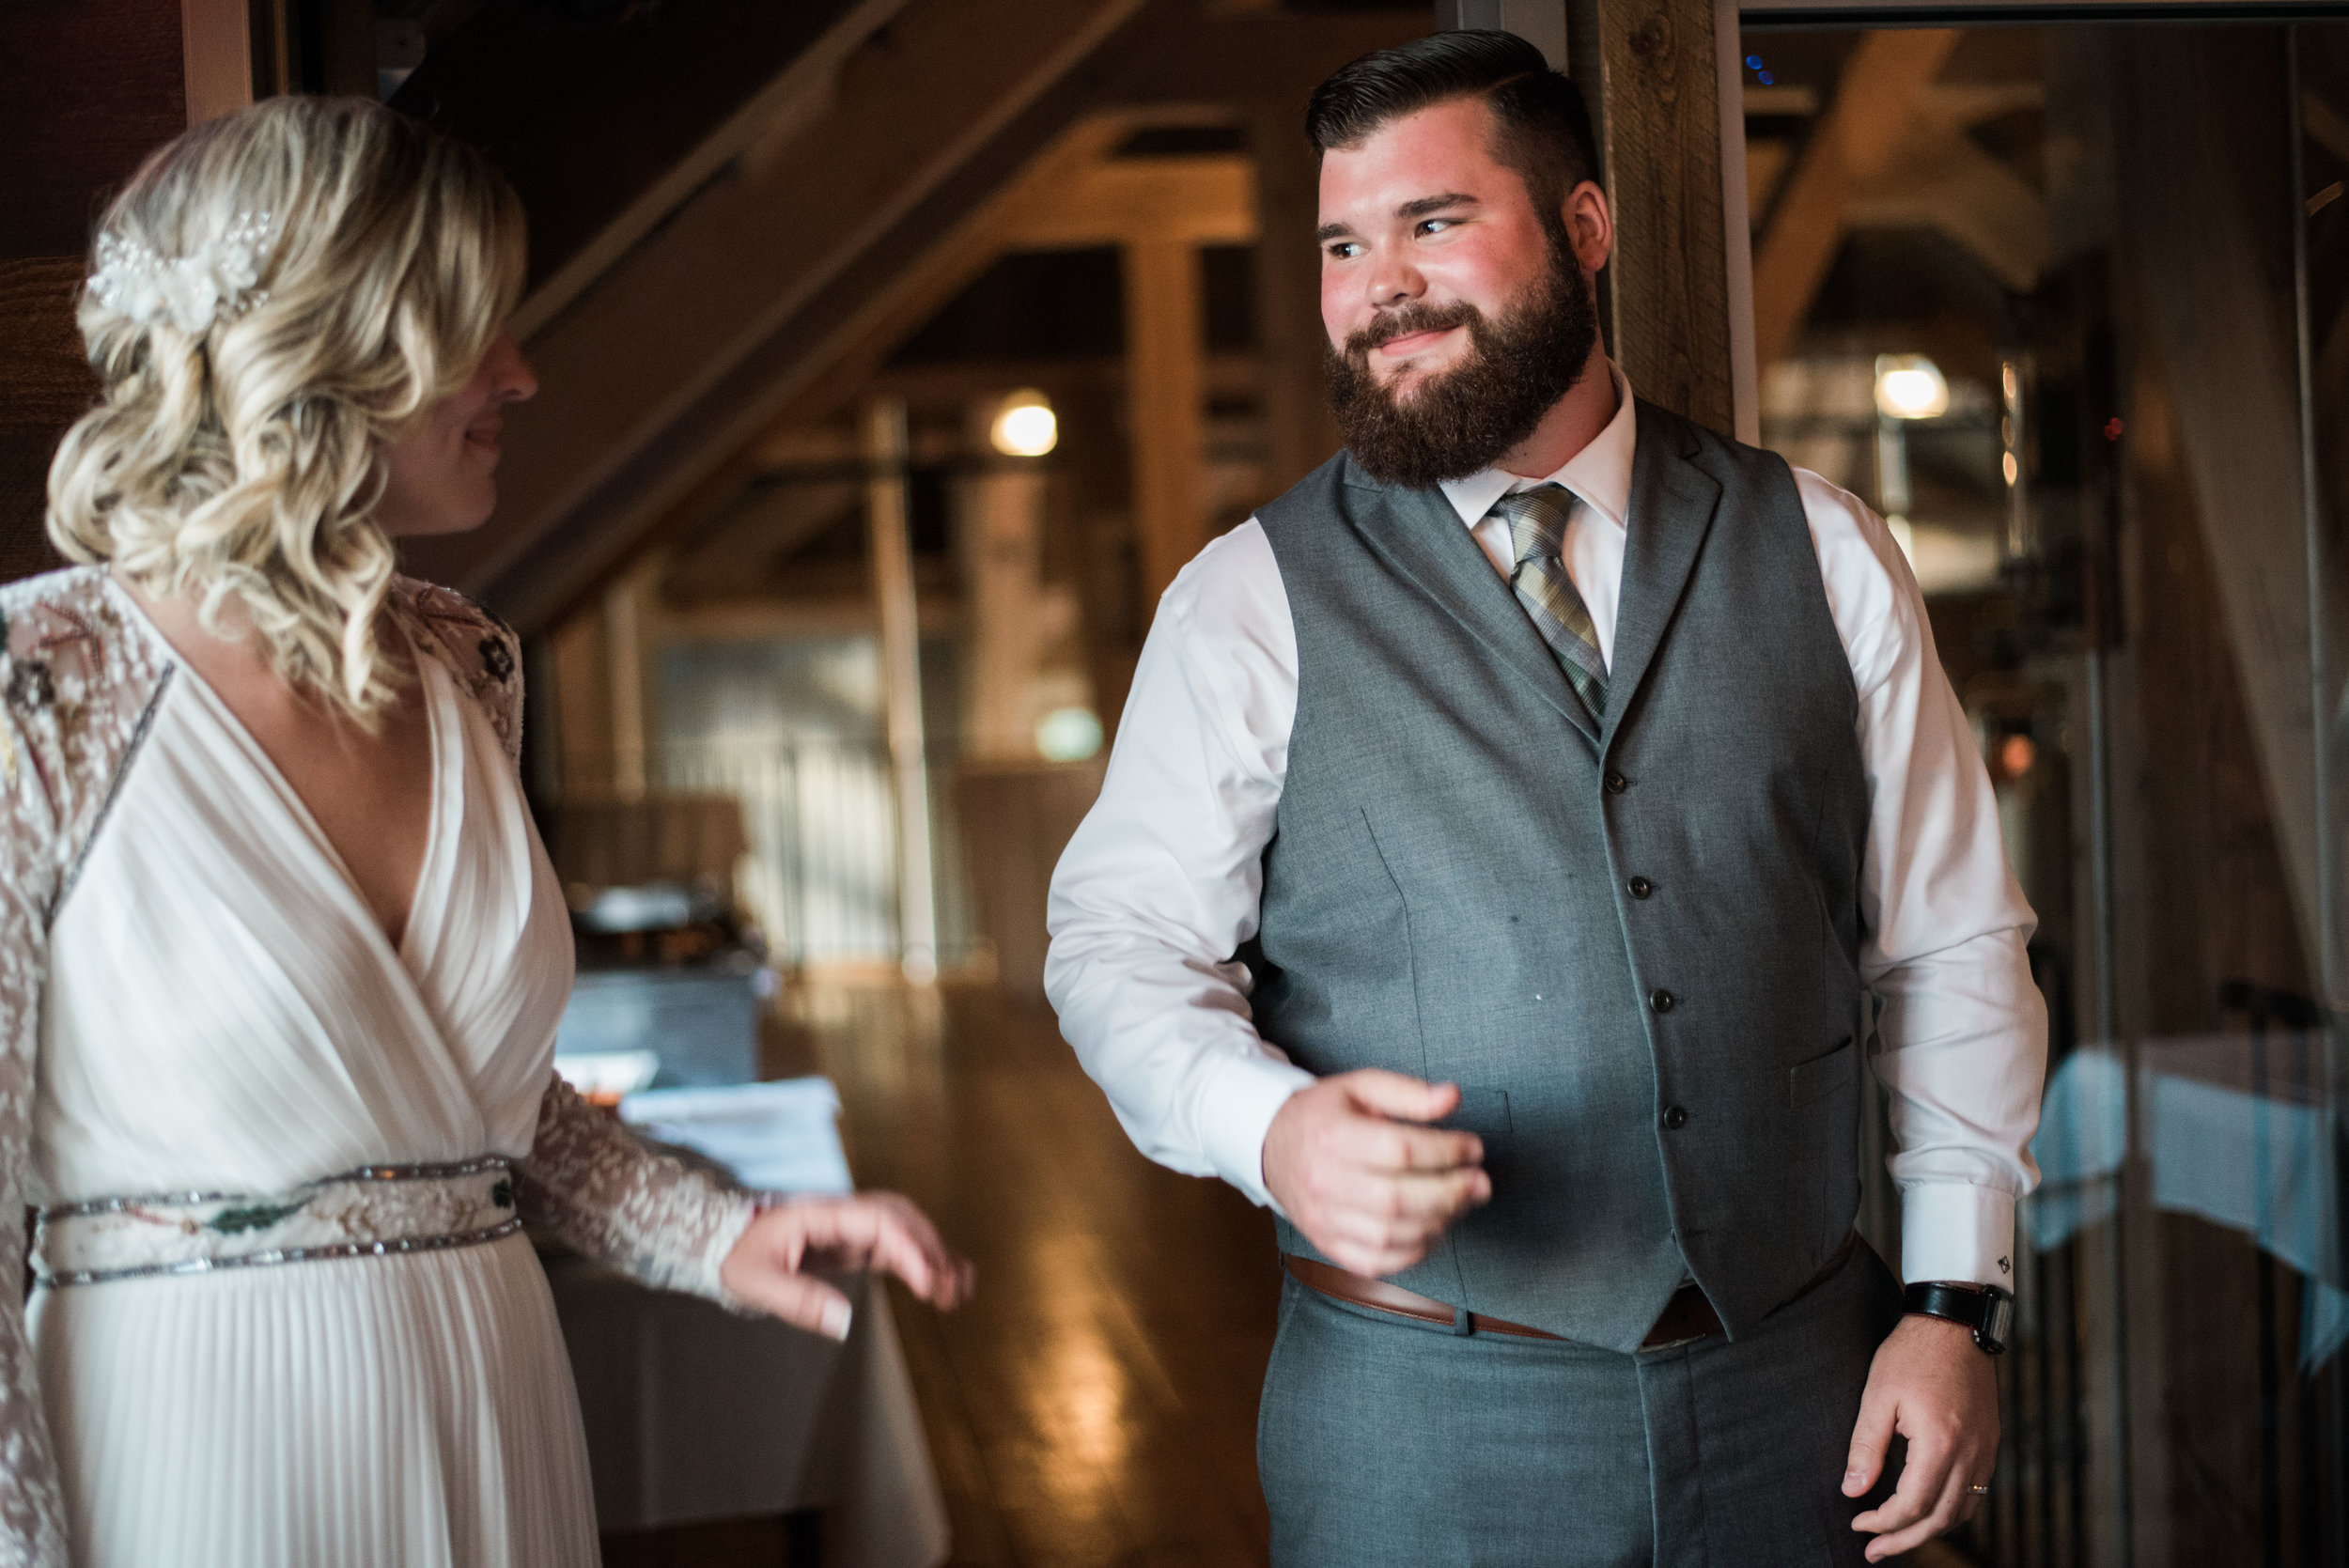 Allison and Matt Wedding Photography in Ellicottville ny by Stefan Ludwig Photography-300.jpg